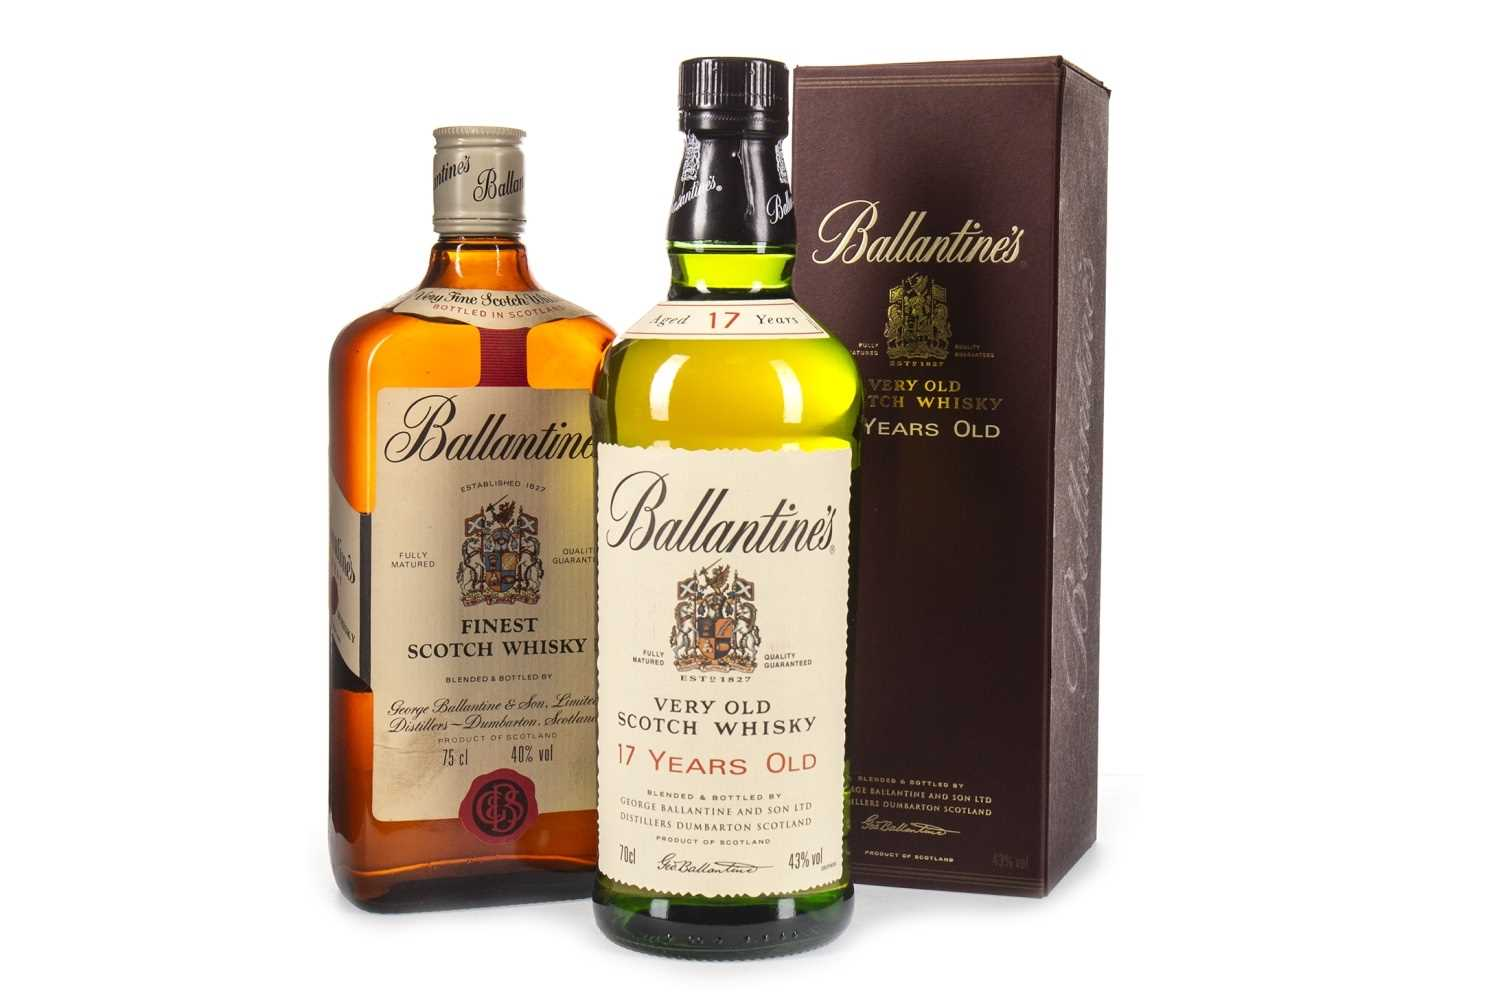 Lot 421-BALLANTINE'S 17 YEARS OLD & FINEST